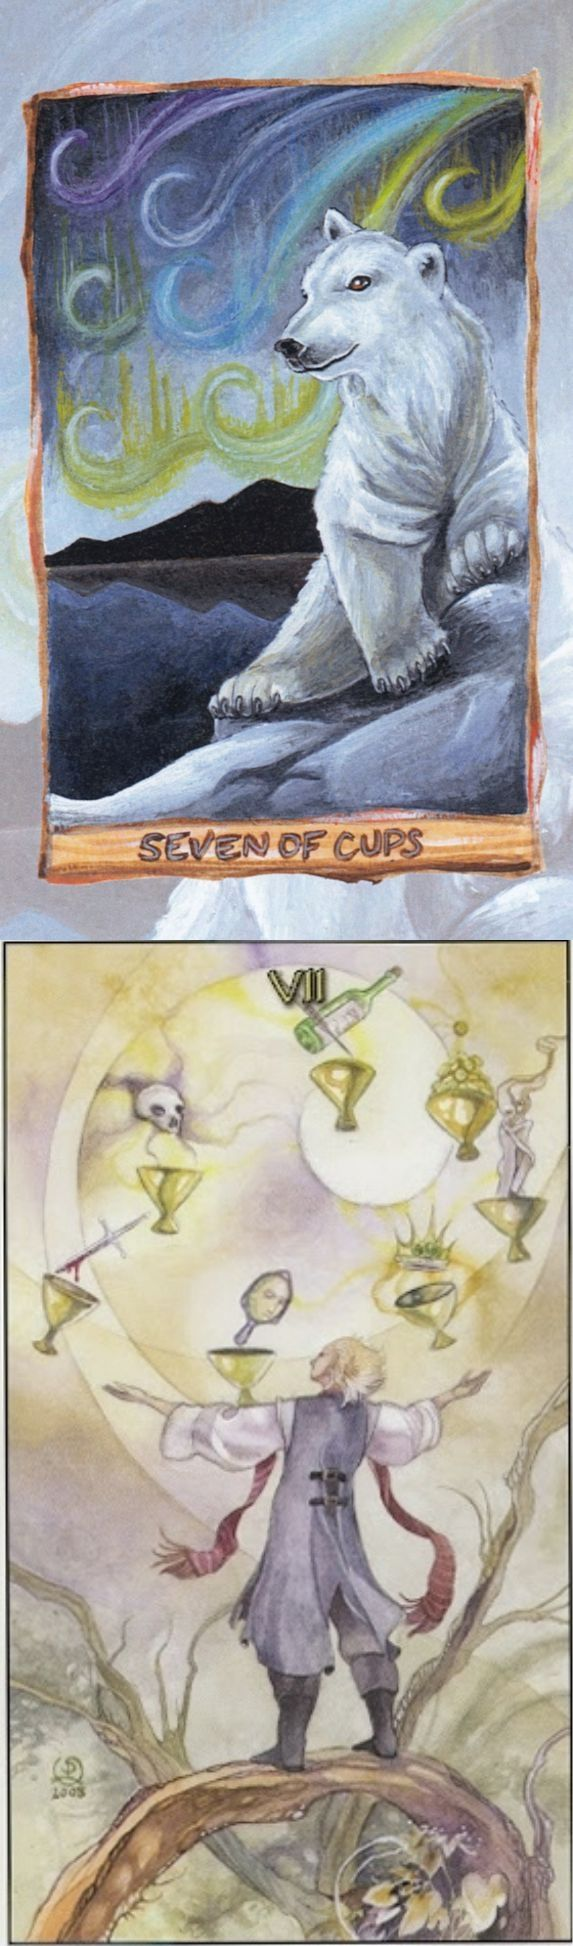 Seven of Cups: others offer disaster and temptation can draw you to ruin (reverse). Animisim Tarot deck and Mage Awakening Tarot deck: tarottable cloth, tarot cards on line and 6 card tarot. Best 2017 cartomancy meanings and gothic art. #ios #tarotdecks #tarotspreads #divination #emperor #witchy